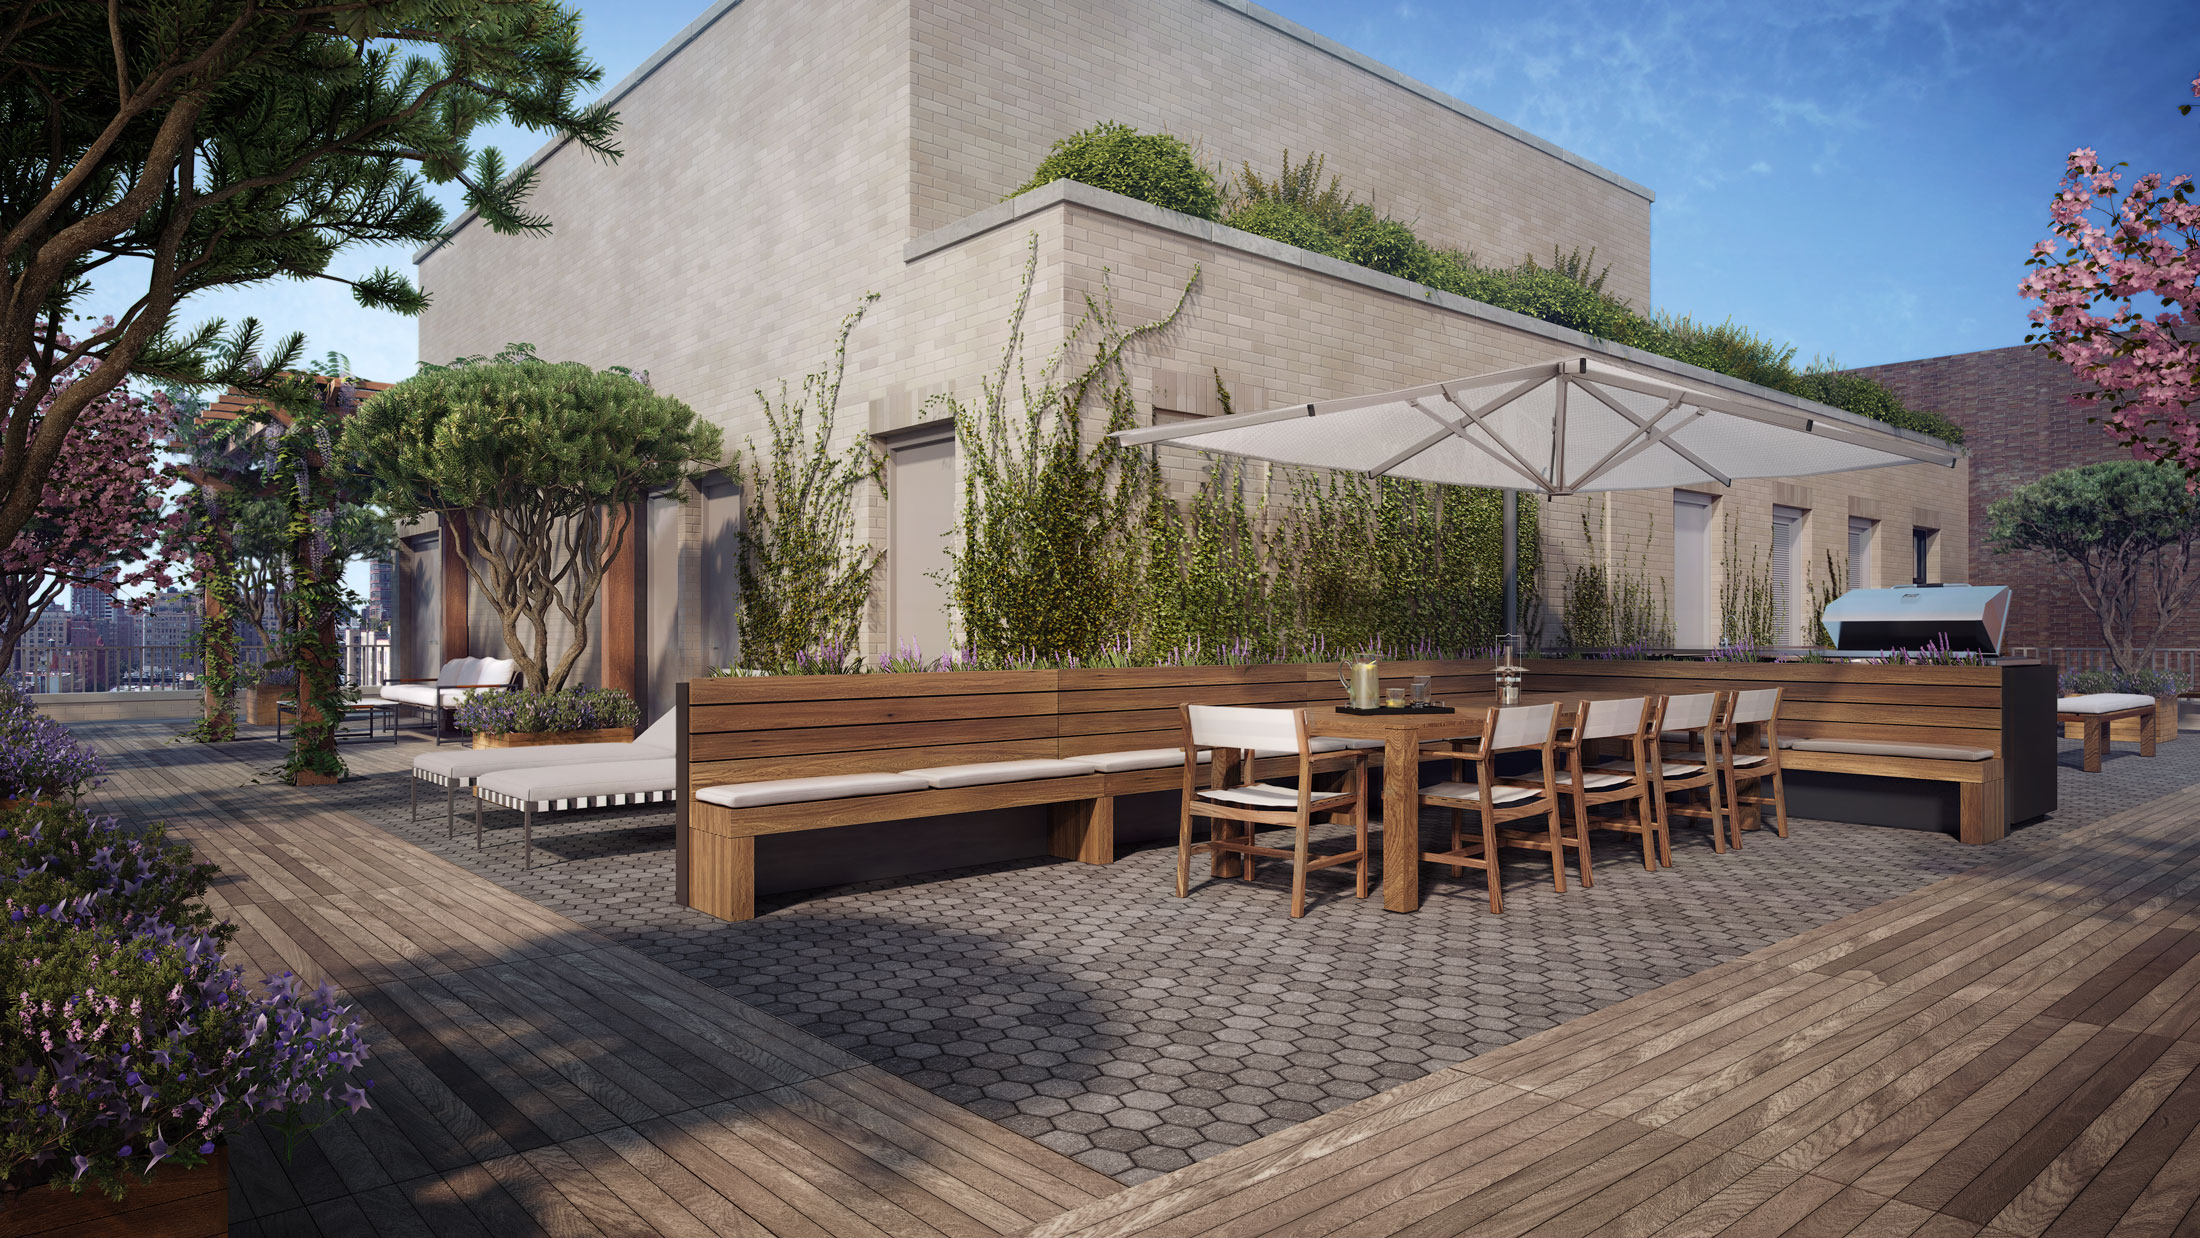 Architectural Rendering of the rooftop of the 207 West 79th Street project located on the Upper West Side, New York City